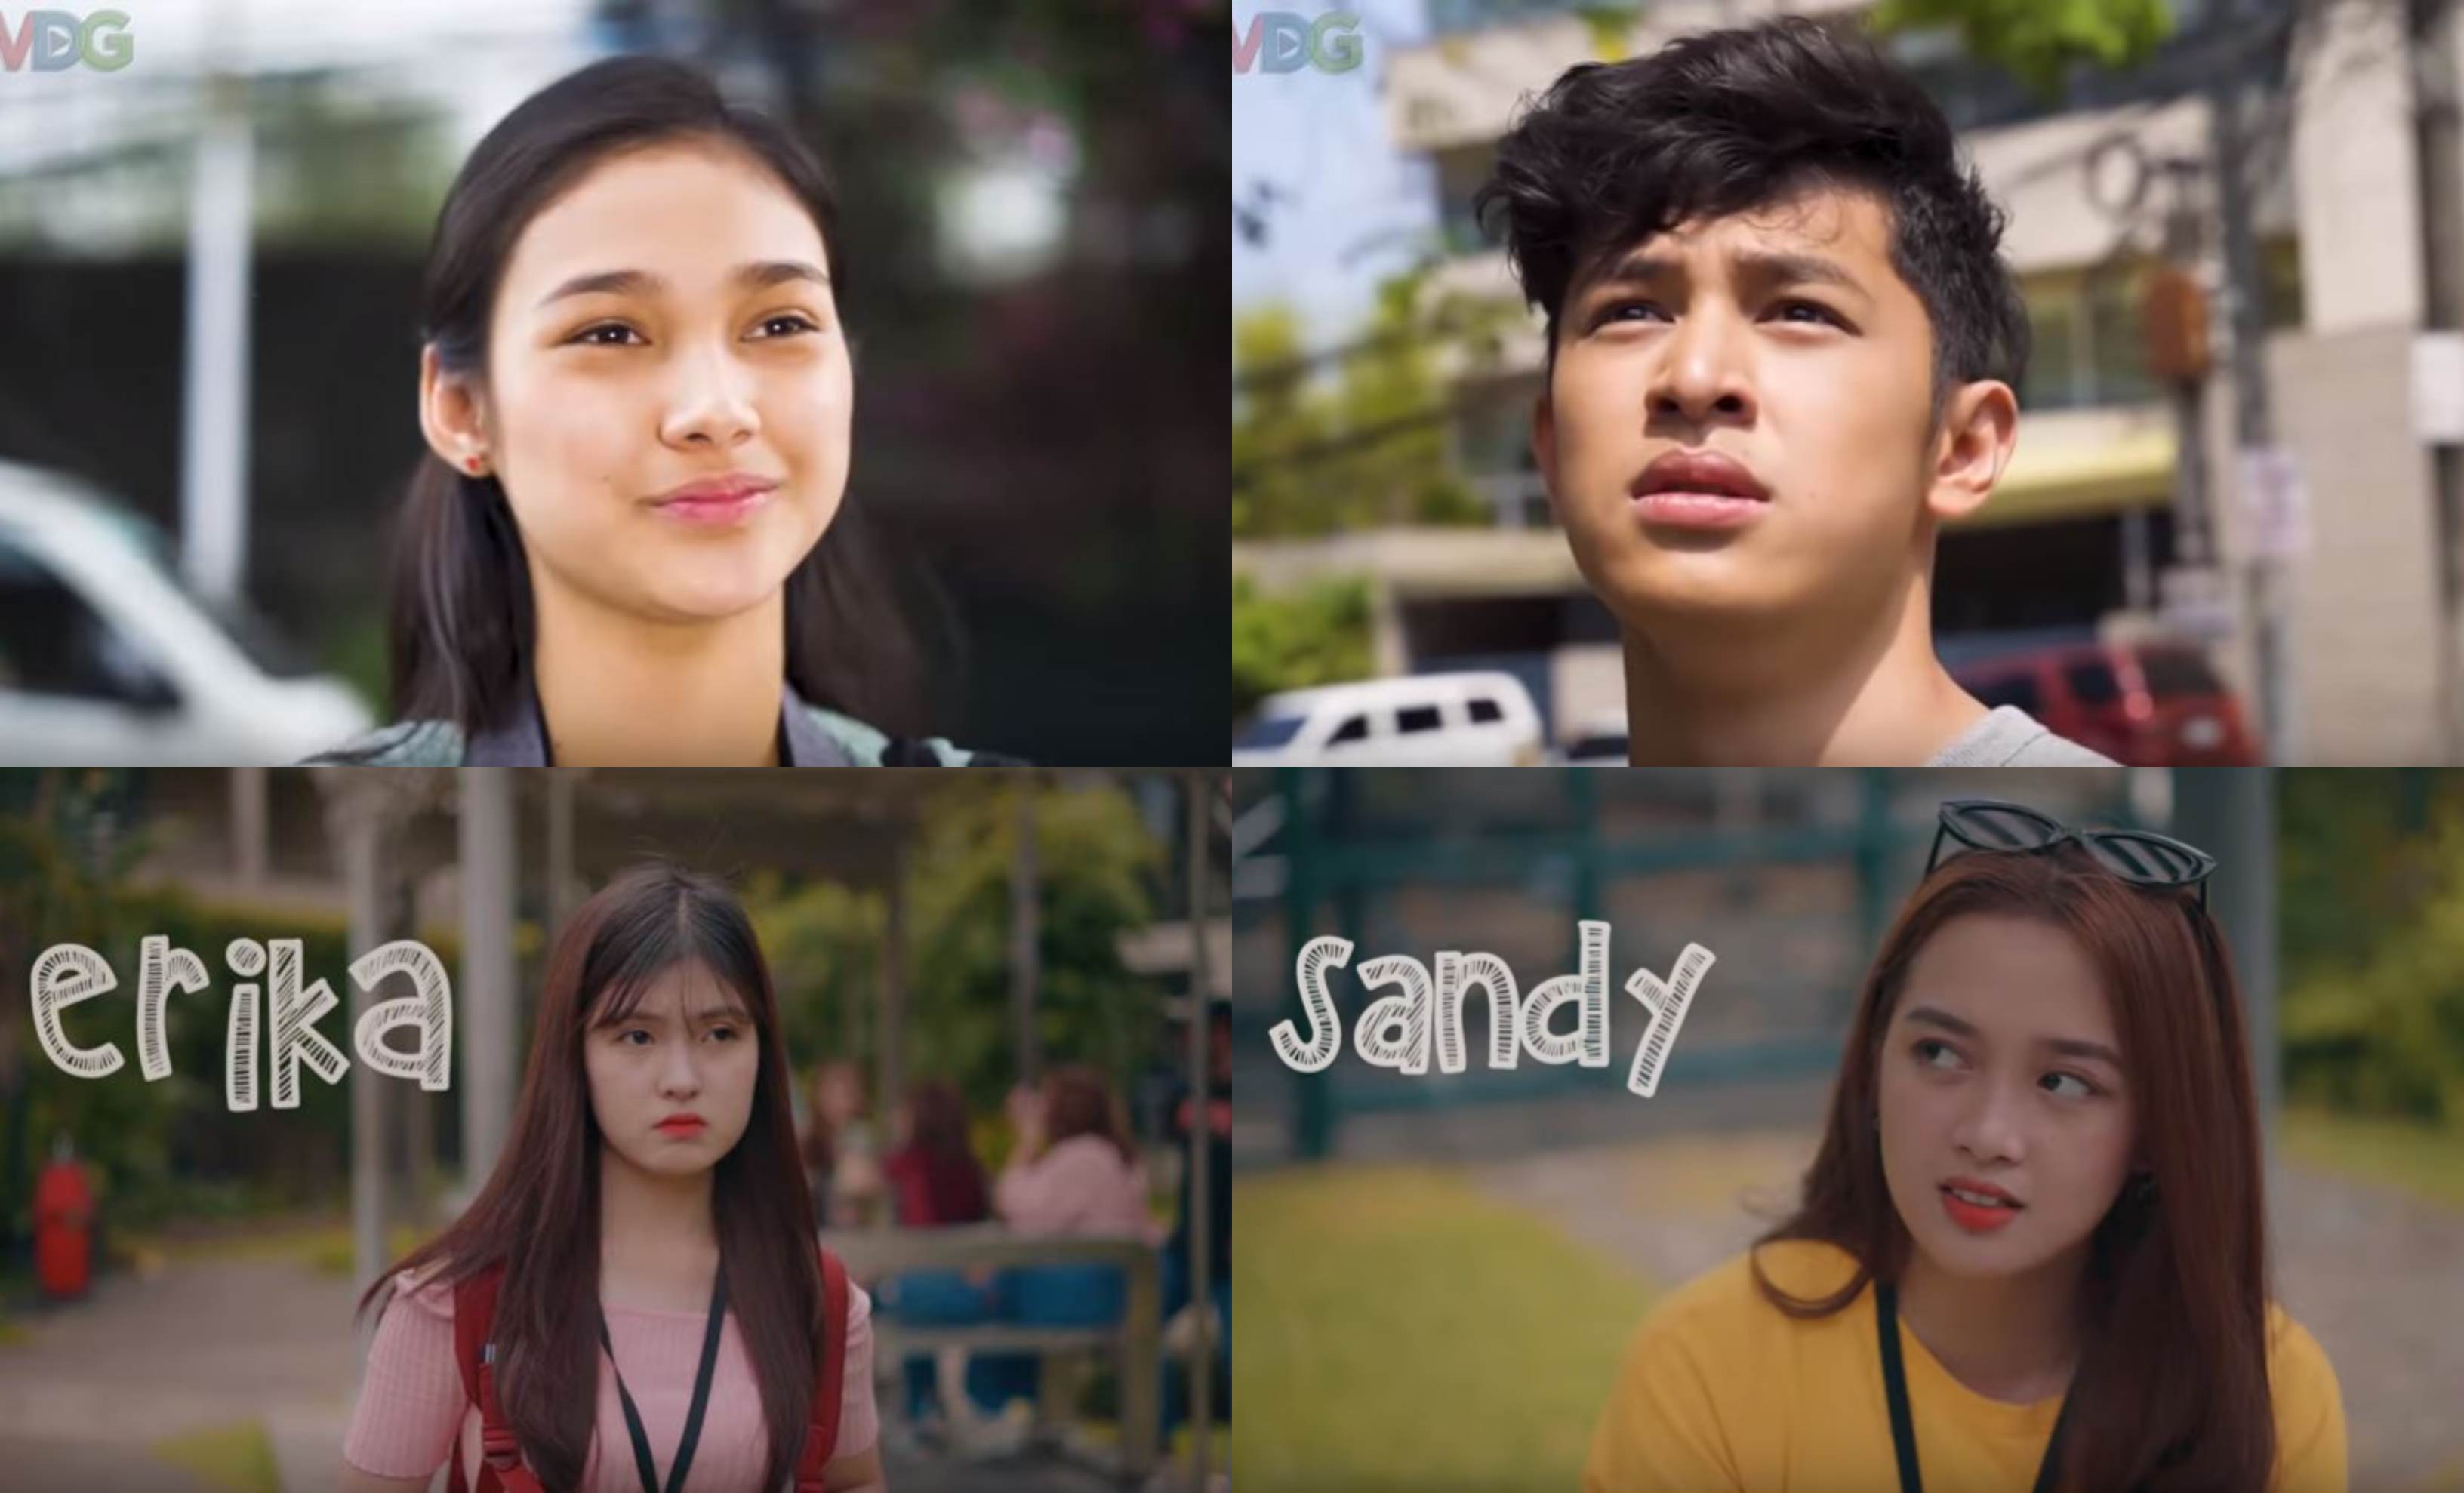 ABS-CBN's newest digital shows